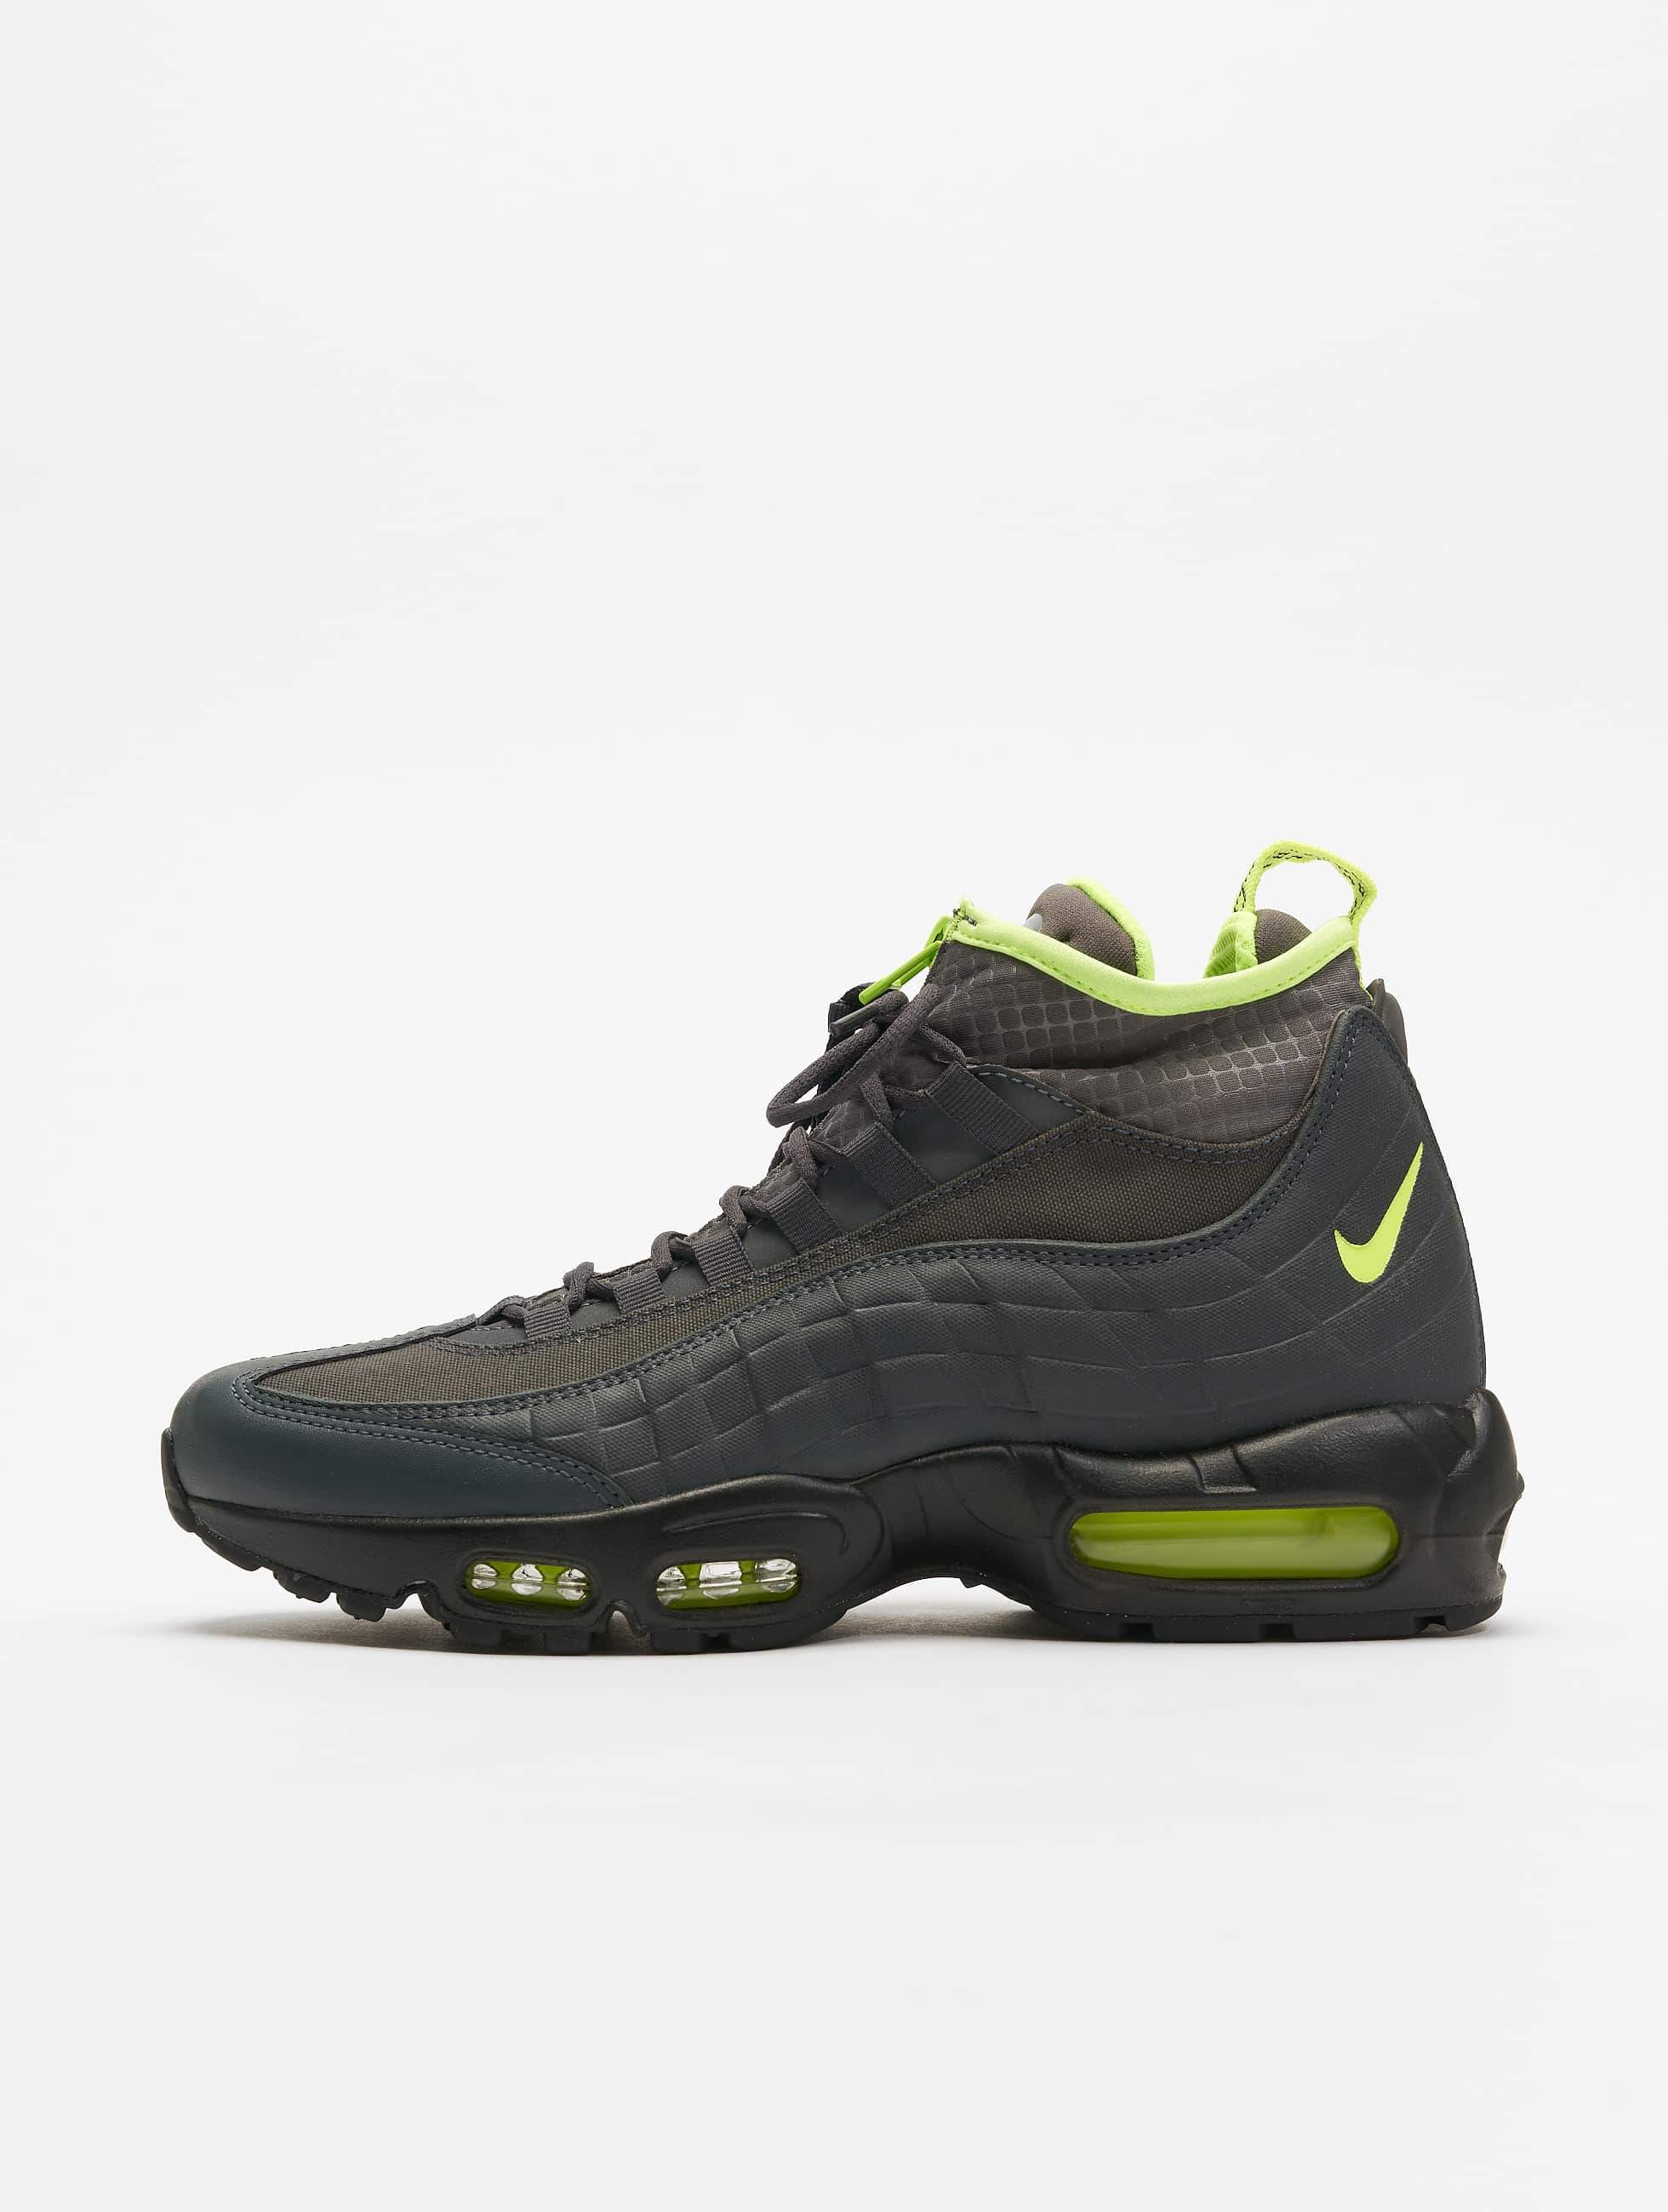 premium selection 9e696 29c42 Nike Skor   Sneakers Air Max 95 i grå 539993